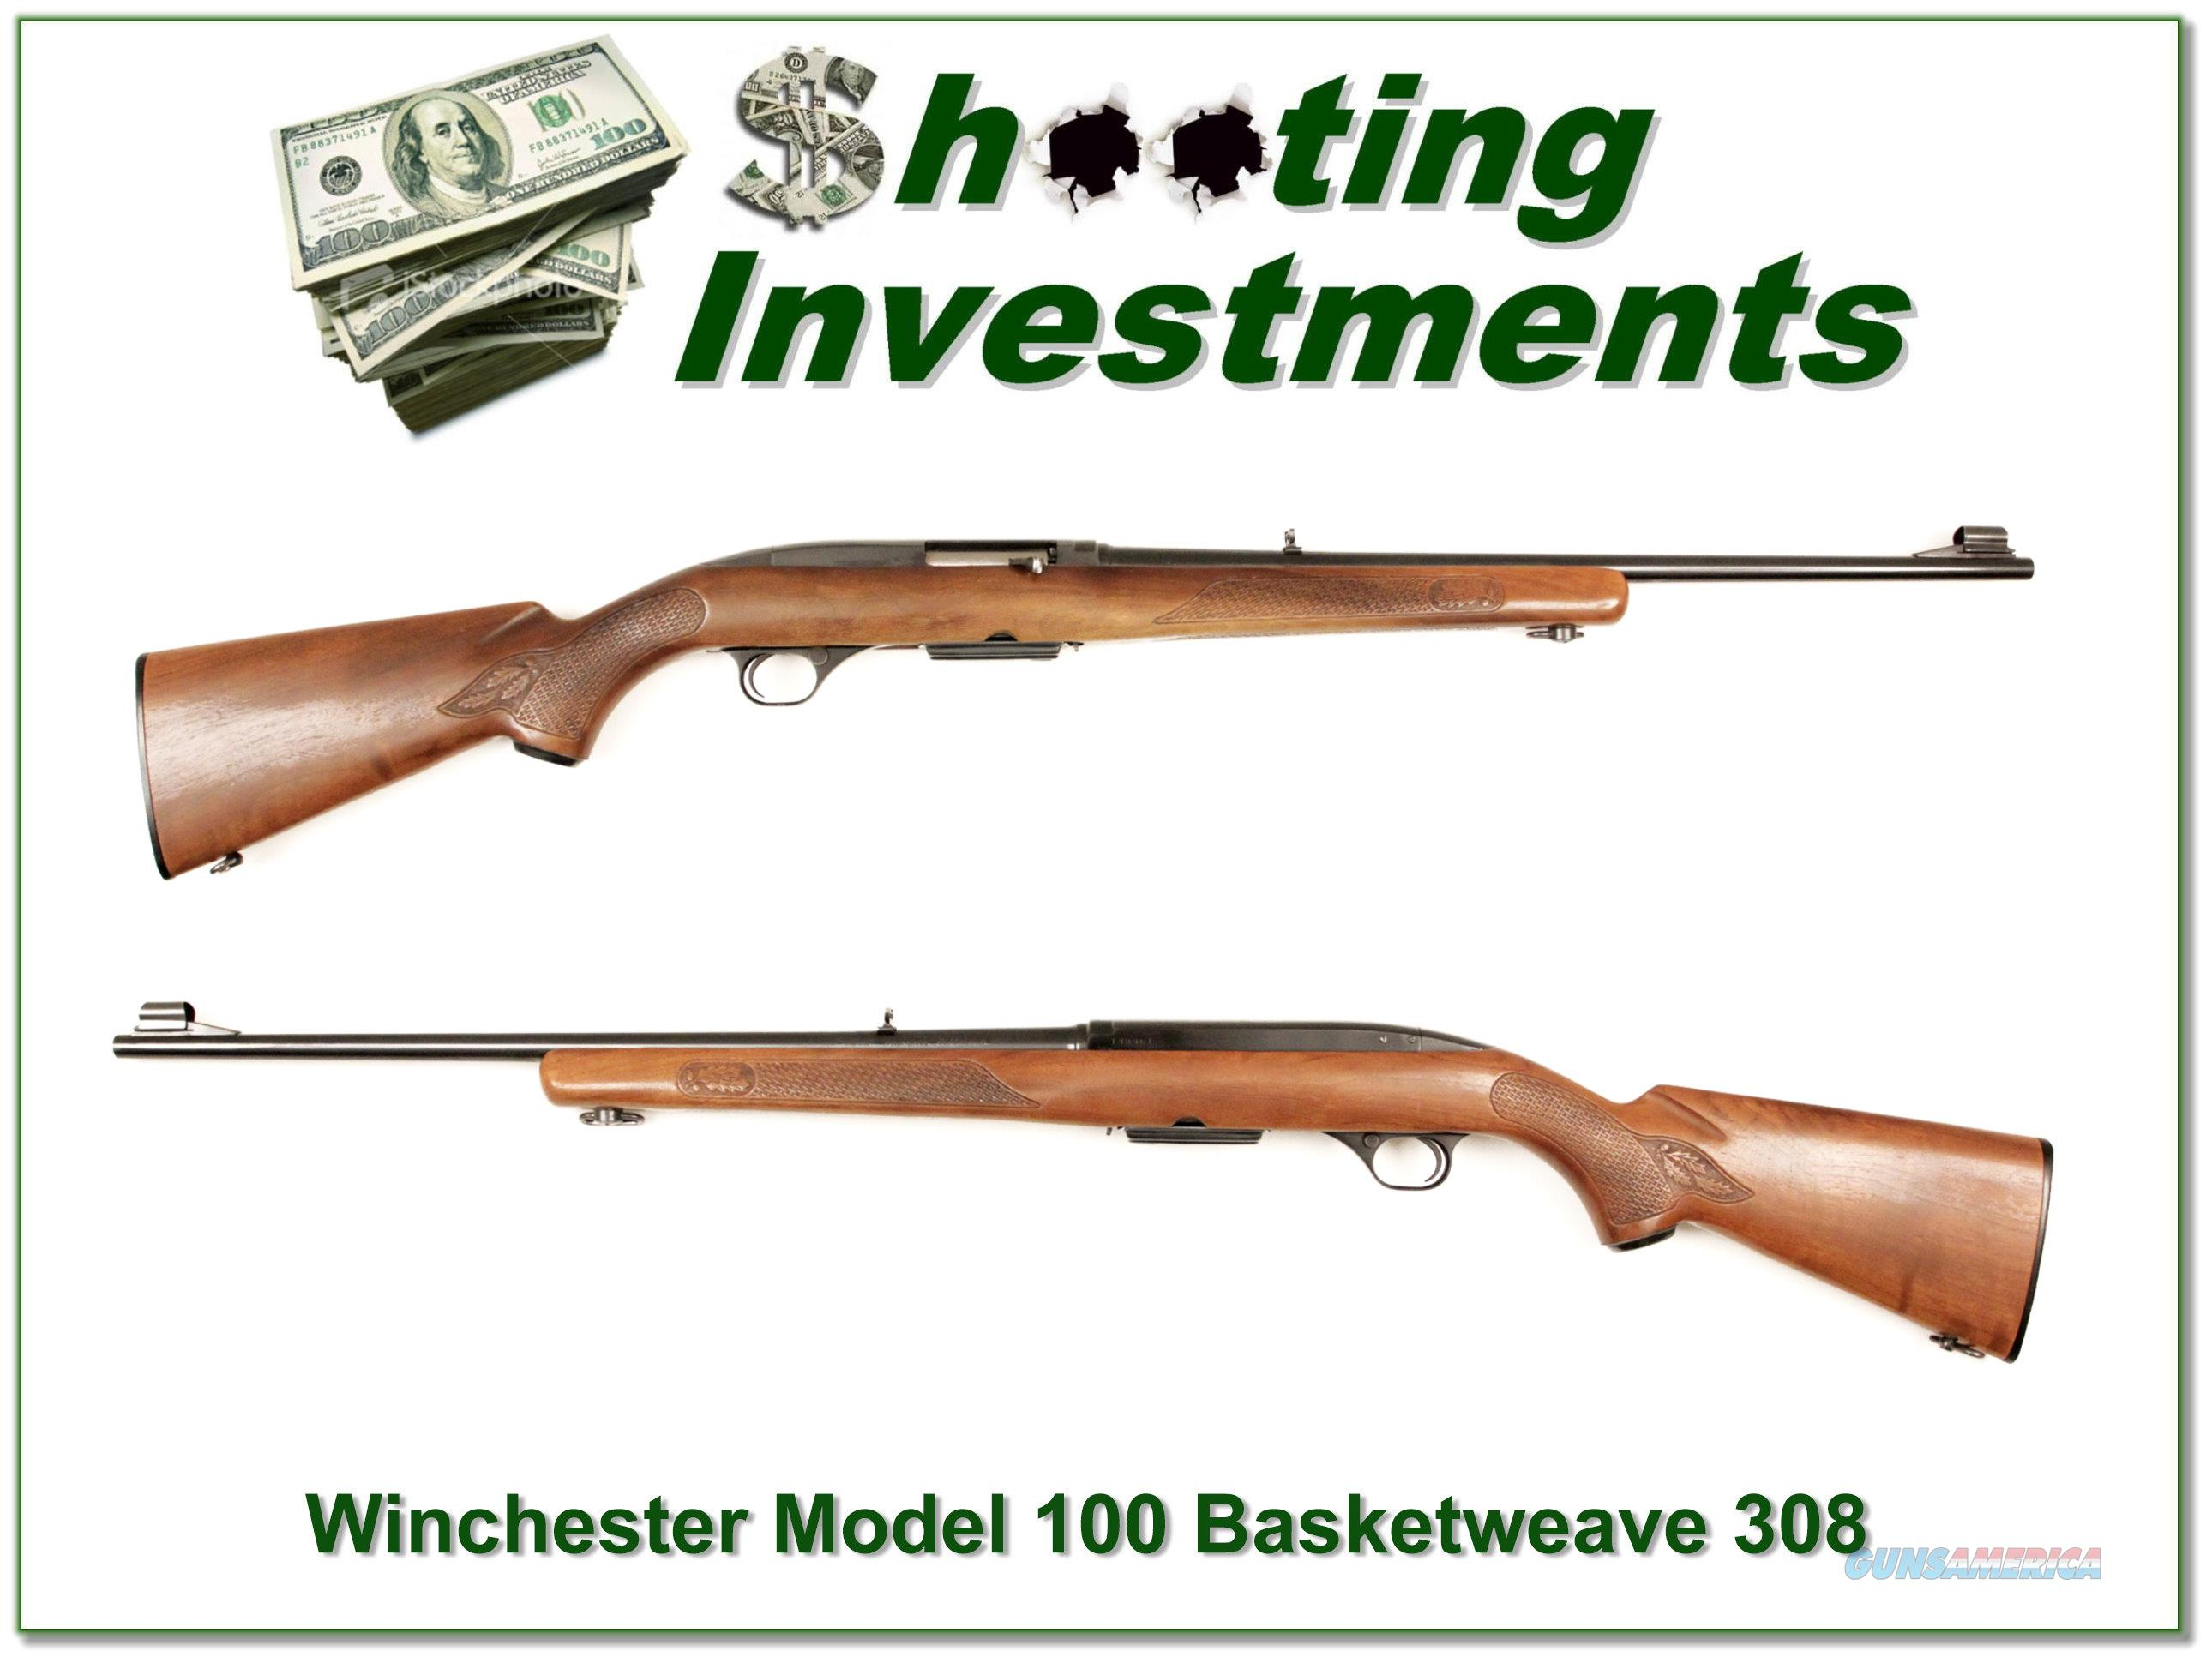 Winchester Model 100 308 Basket Weave Exc Cond!  Guns > Rifles > Winchester Rifles - Modern Bolt/Auto/Single > Autoloaders